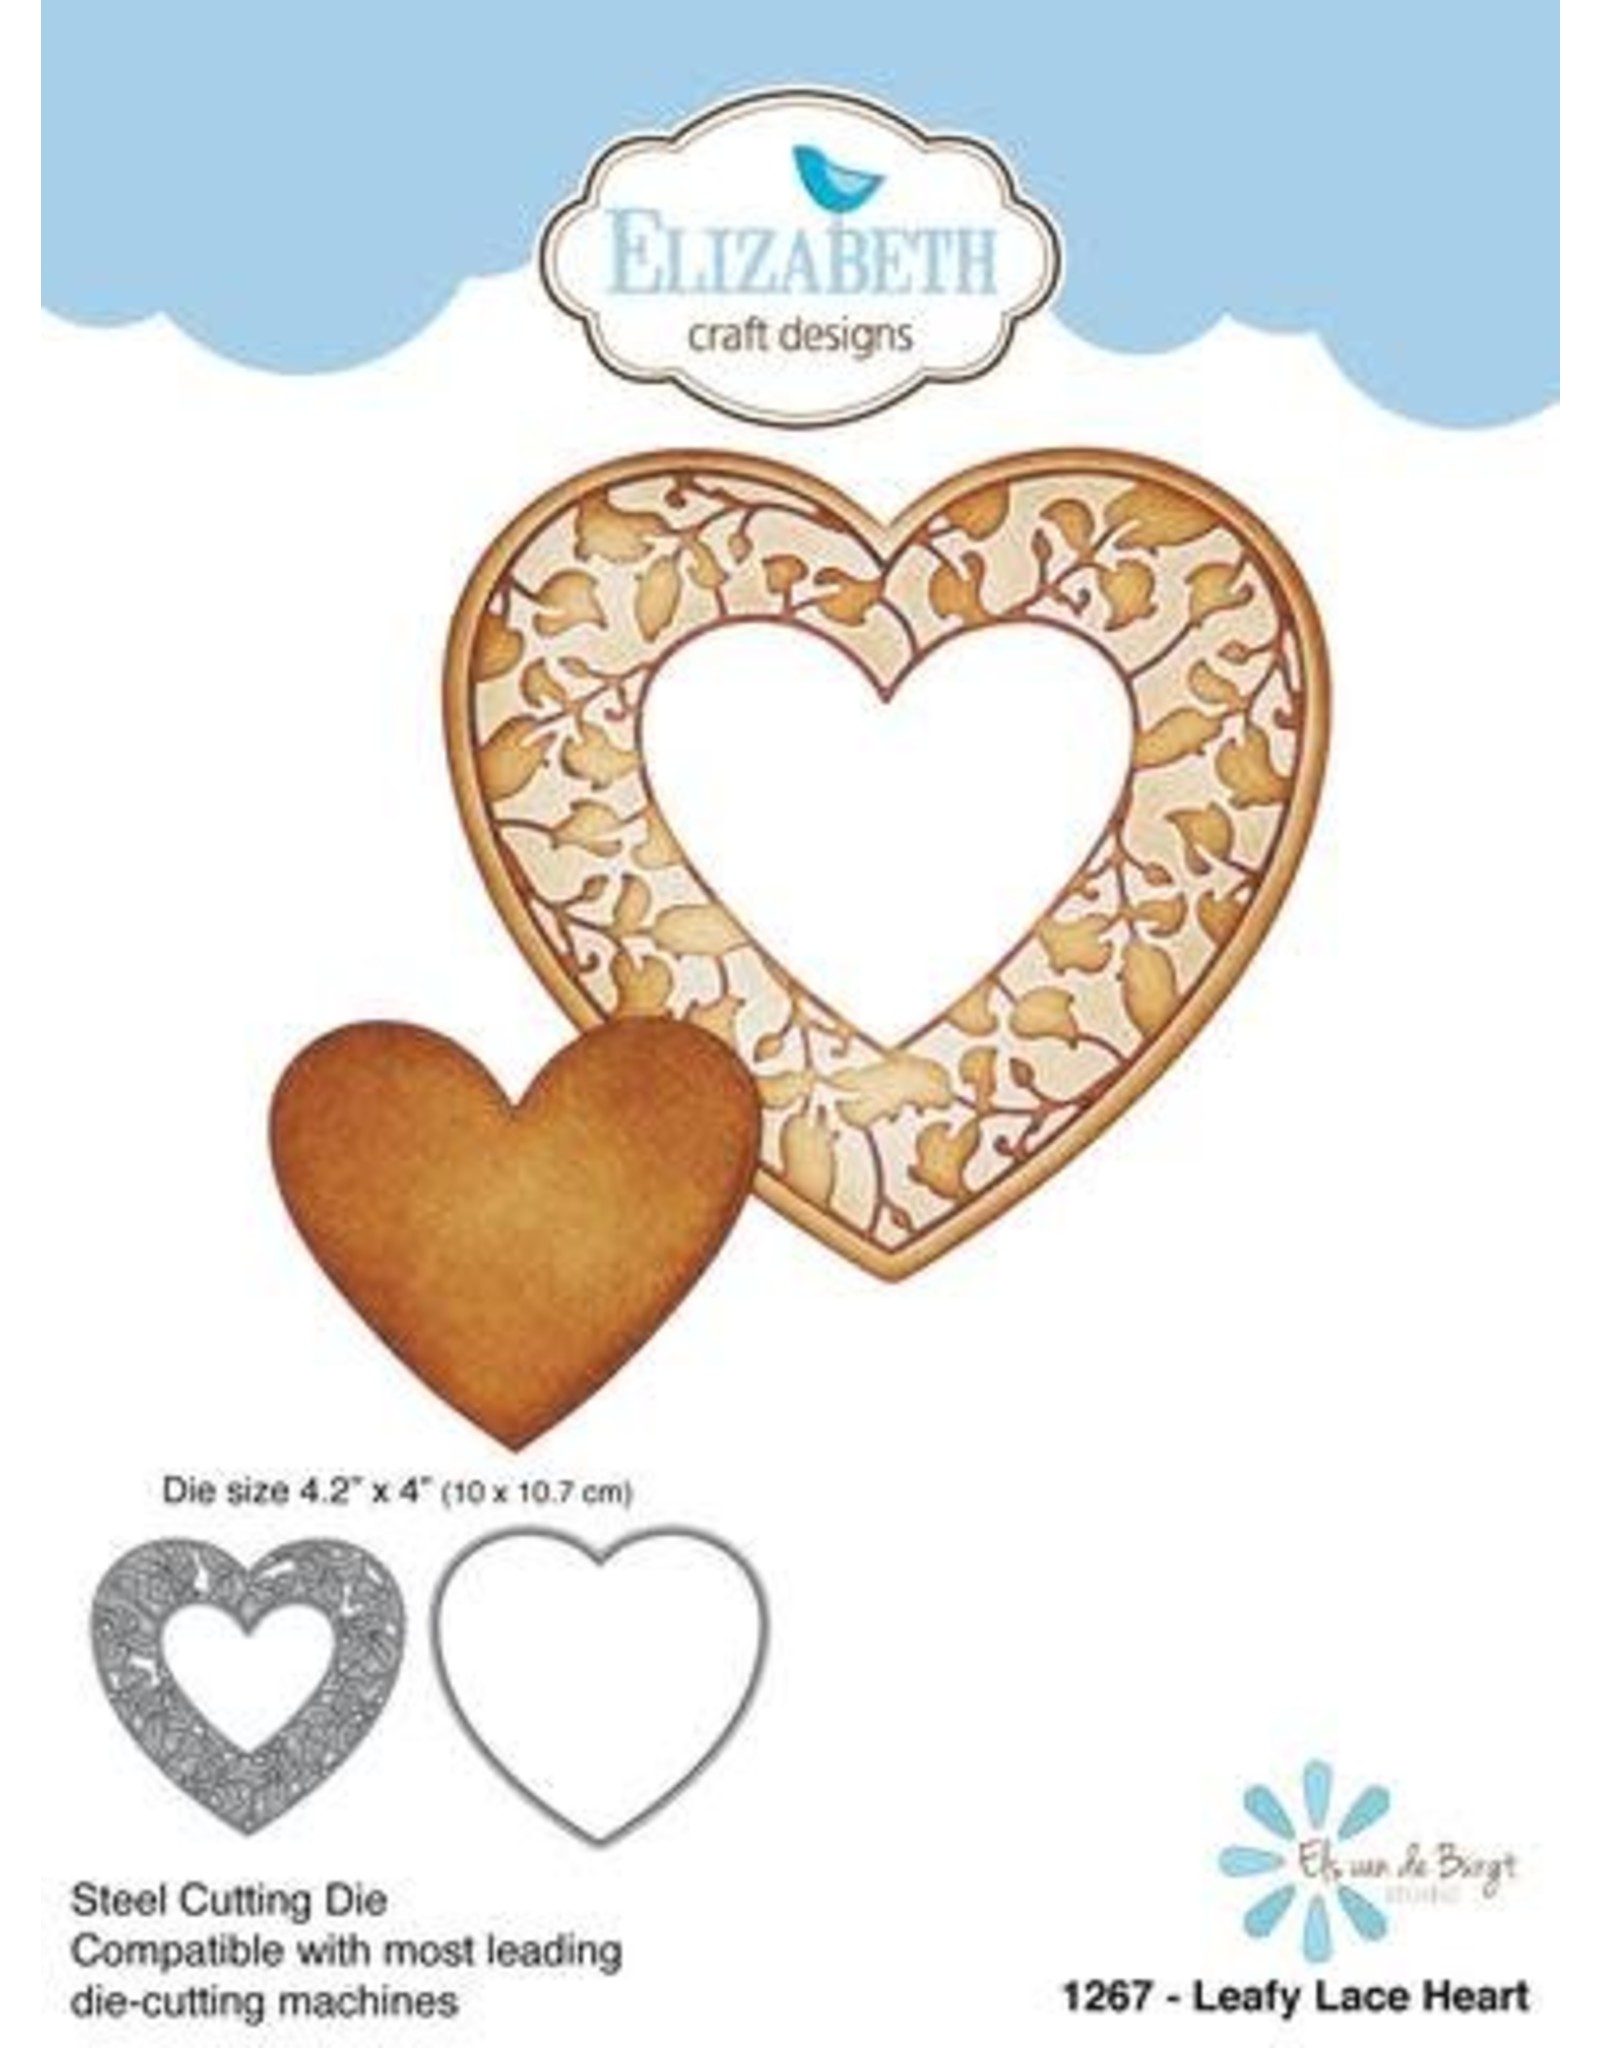 Elizabeth Craft Designs Elizabeth Craft Designs dies Leafy Lace Heart 1267